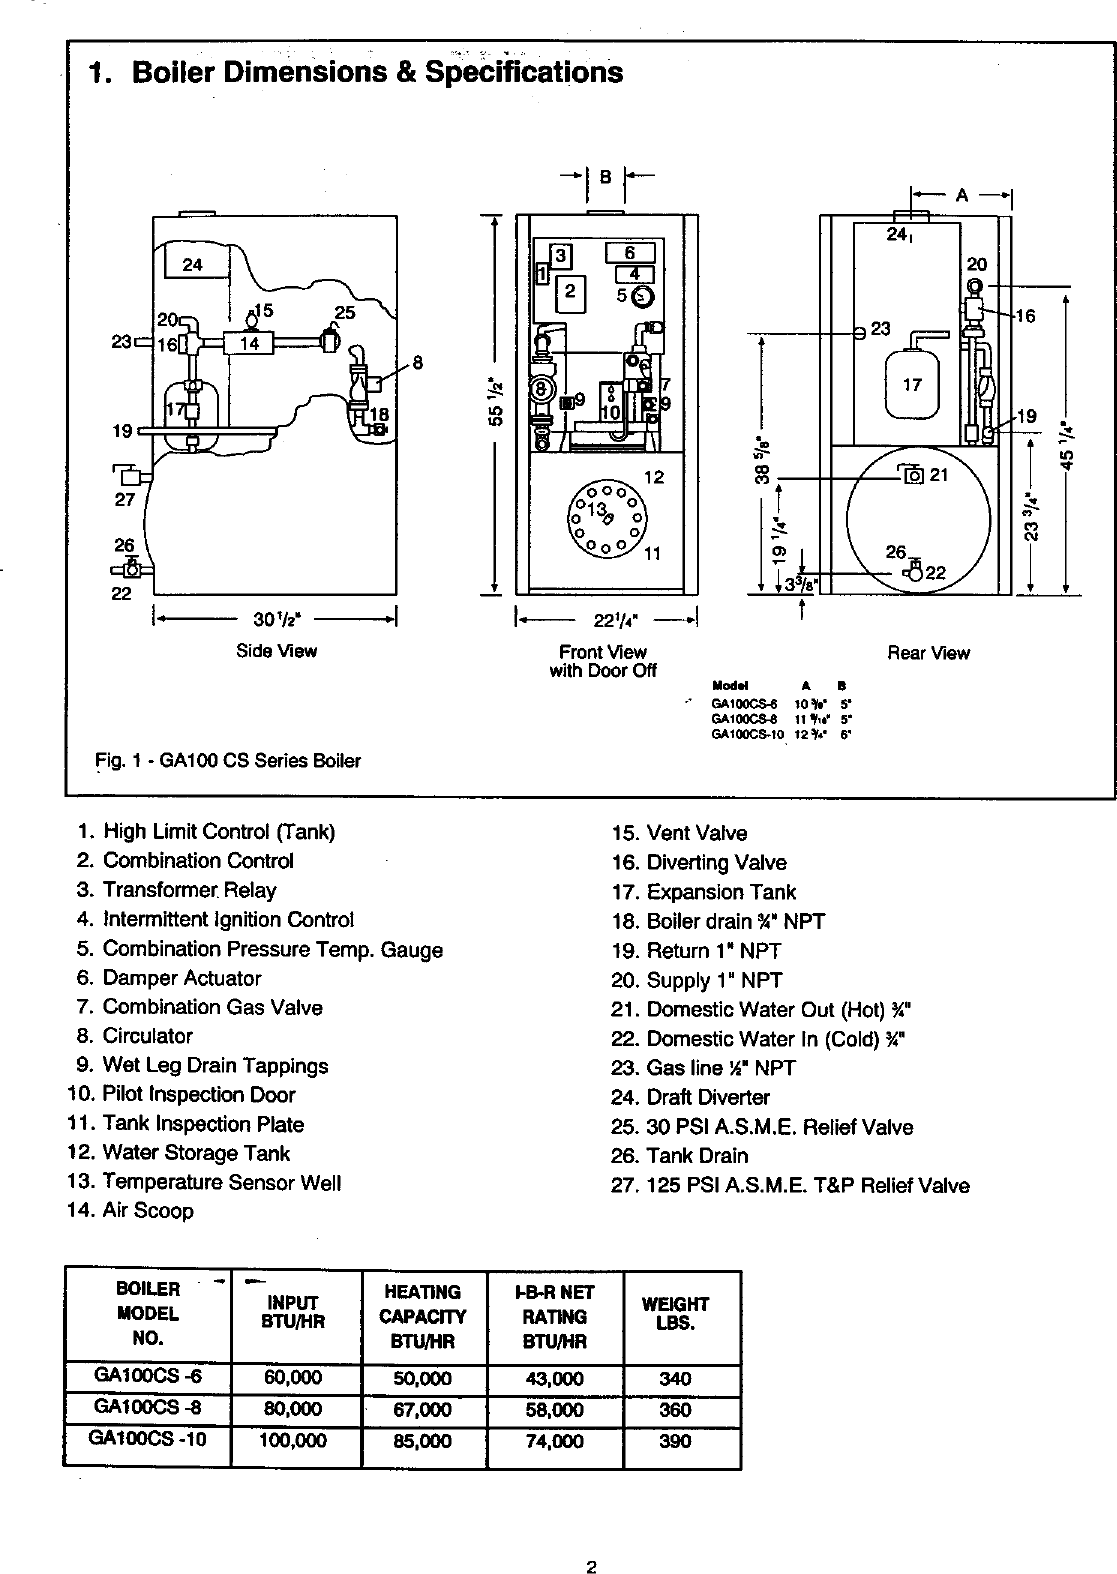 Vaillant Boiler Manual 98110066 Gas Vent Damper Wiring Diagrams Page 2 Of 12